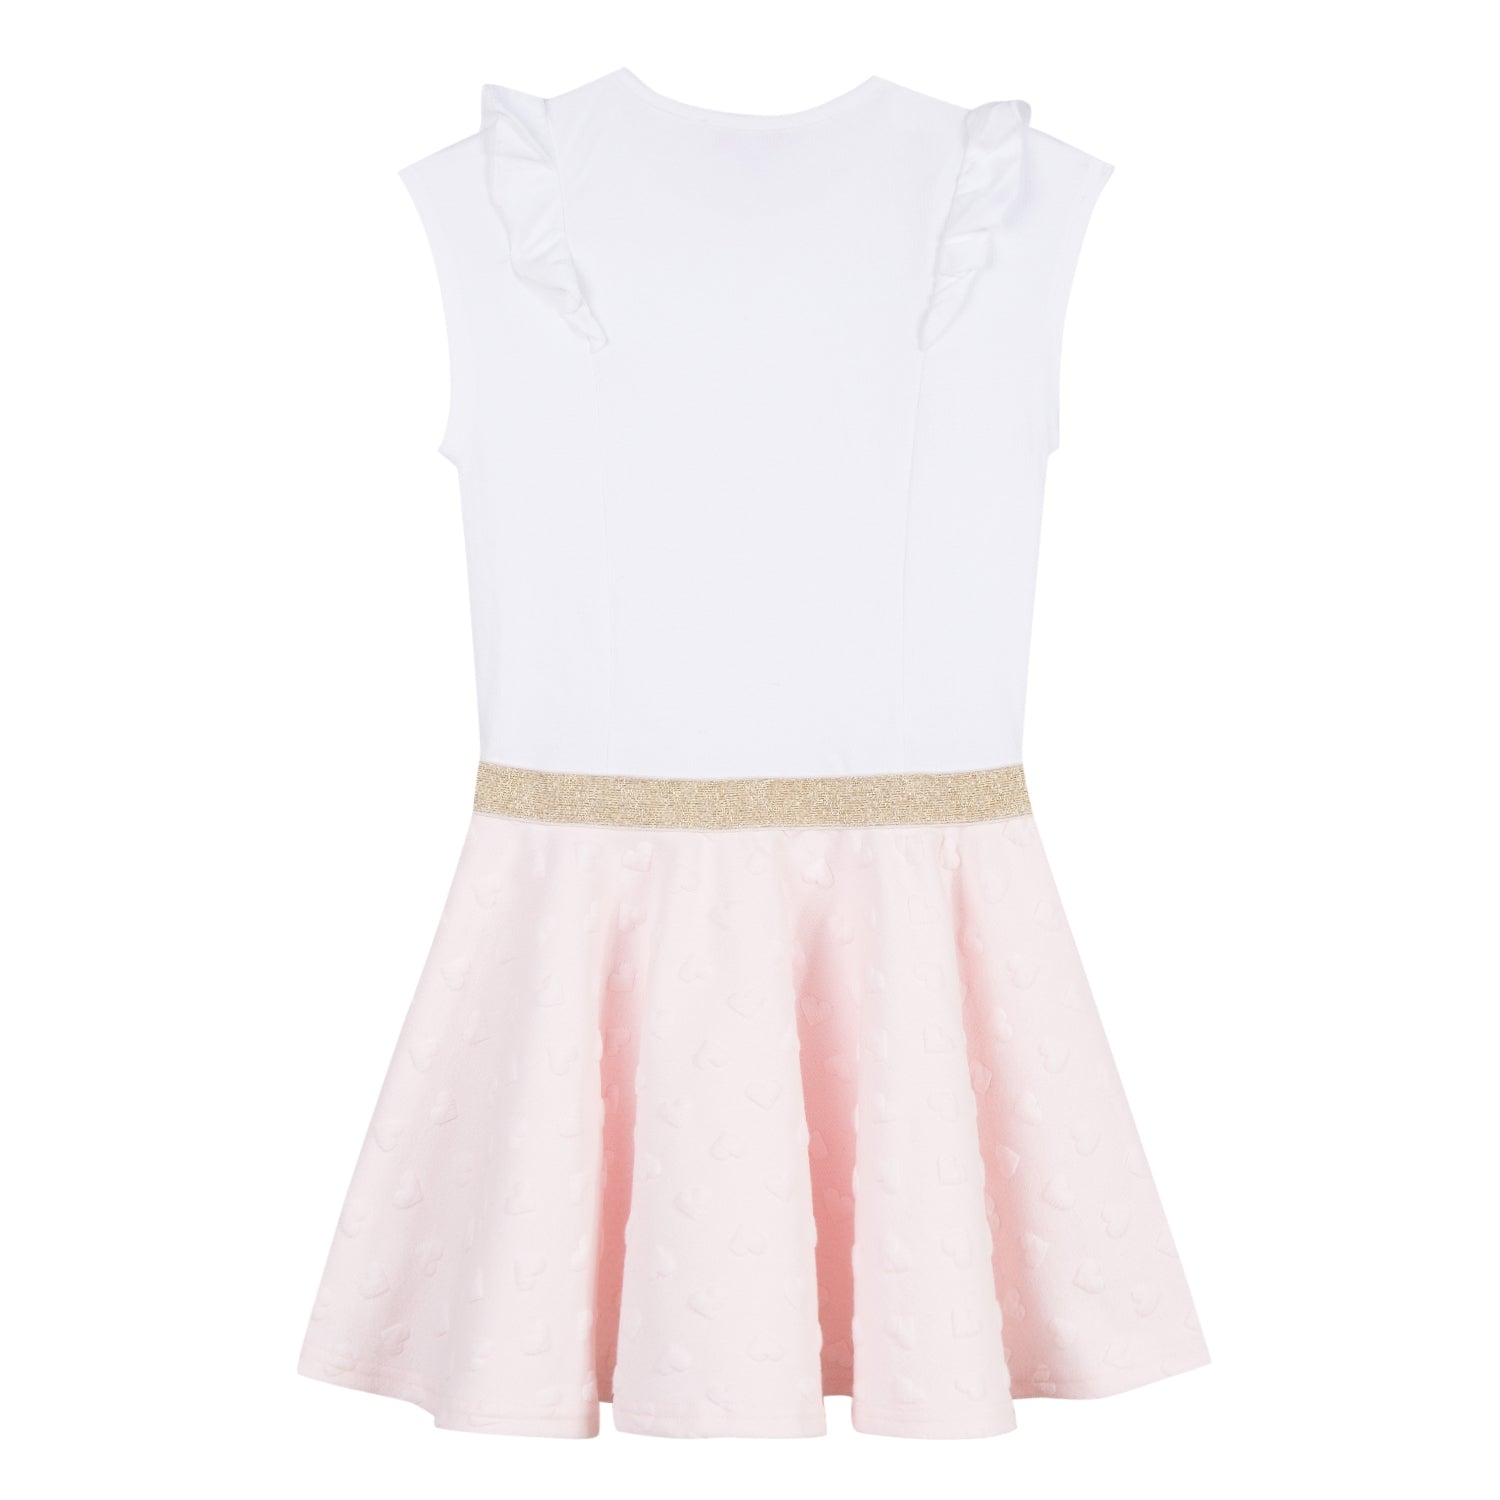 Girls Sleeveless Dress With Gold Knot Waist